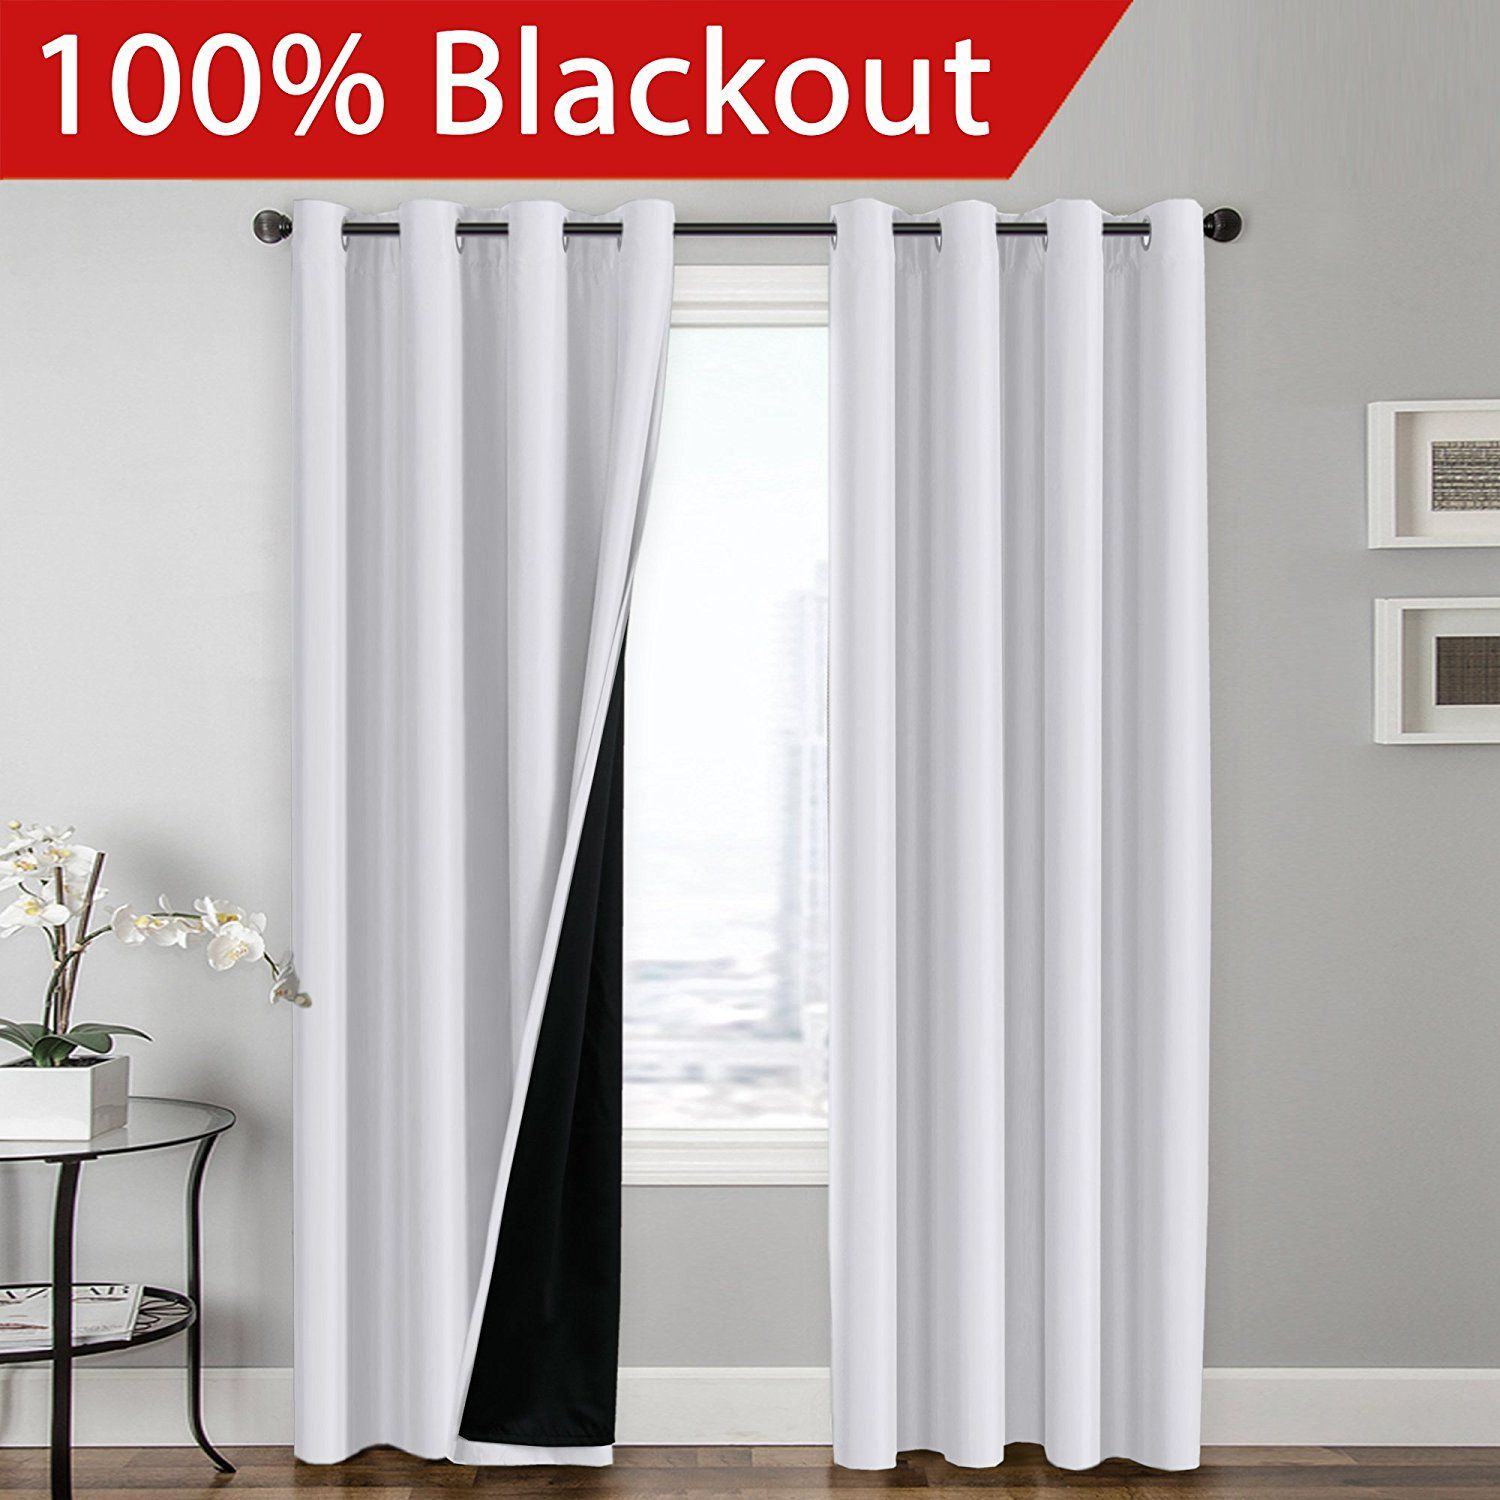 Top 10 Best Blackout Curtains Review Cool Curtains White